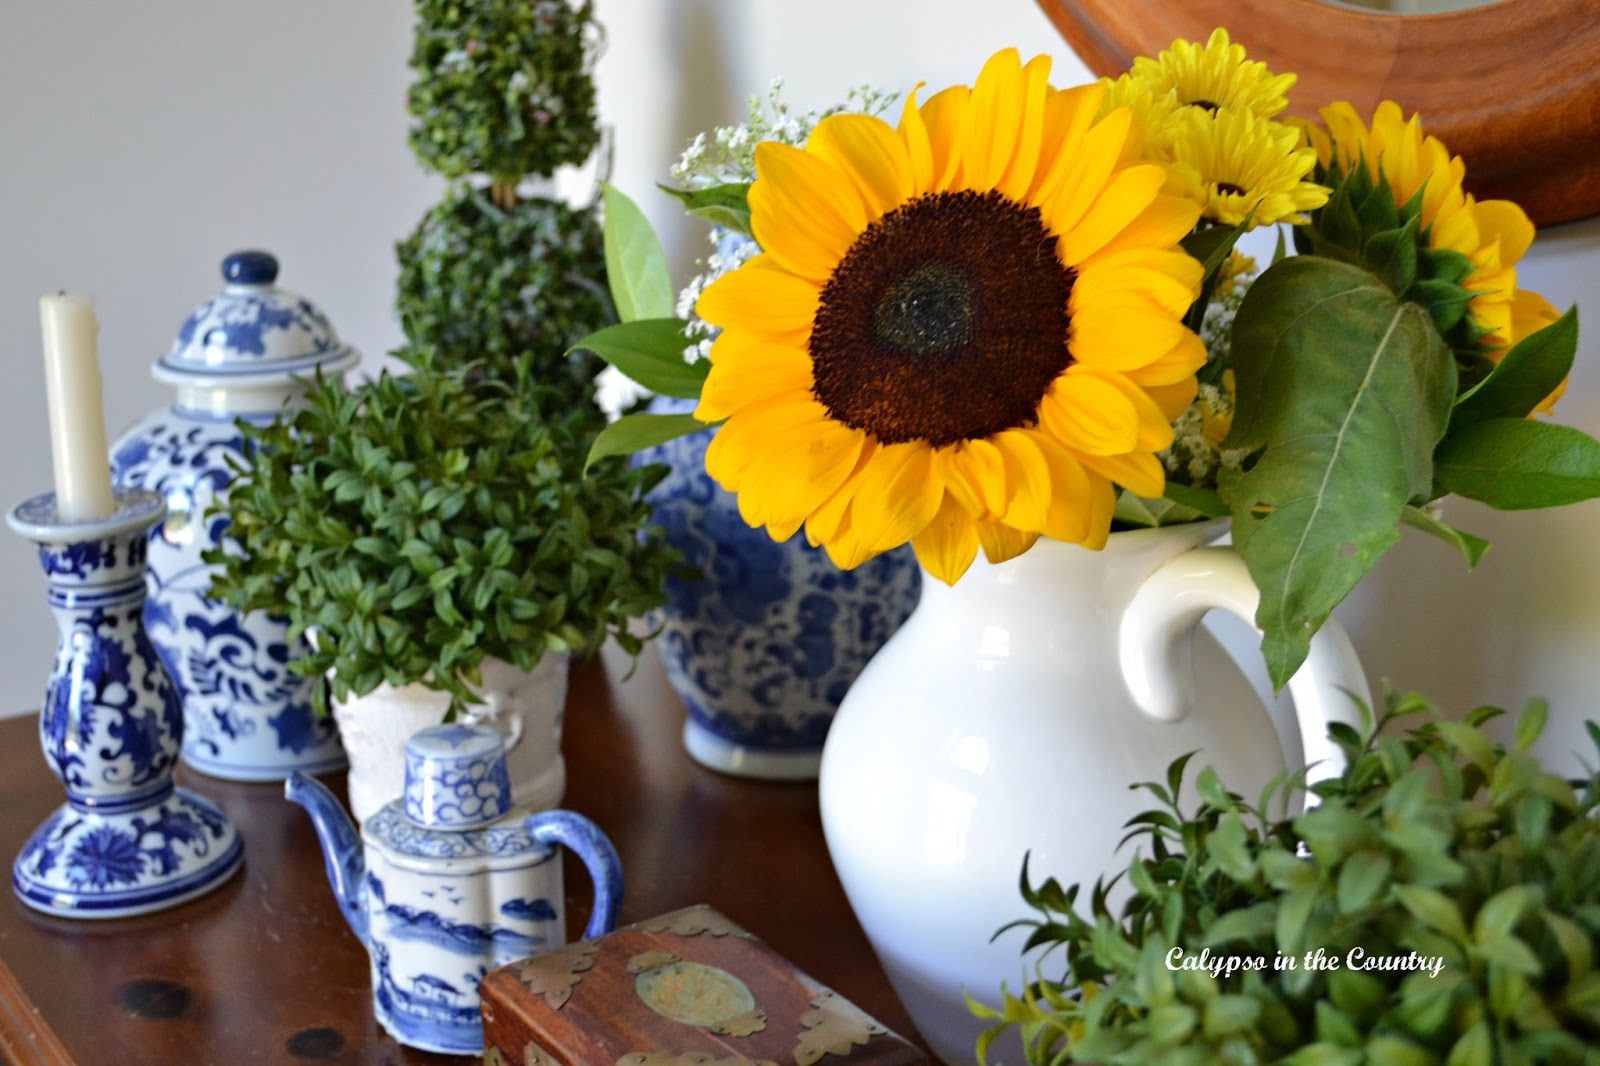 Sunflowers in the foyer